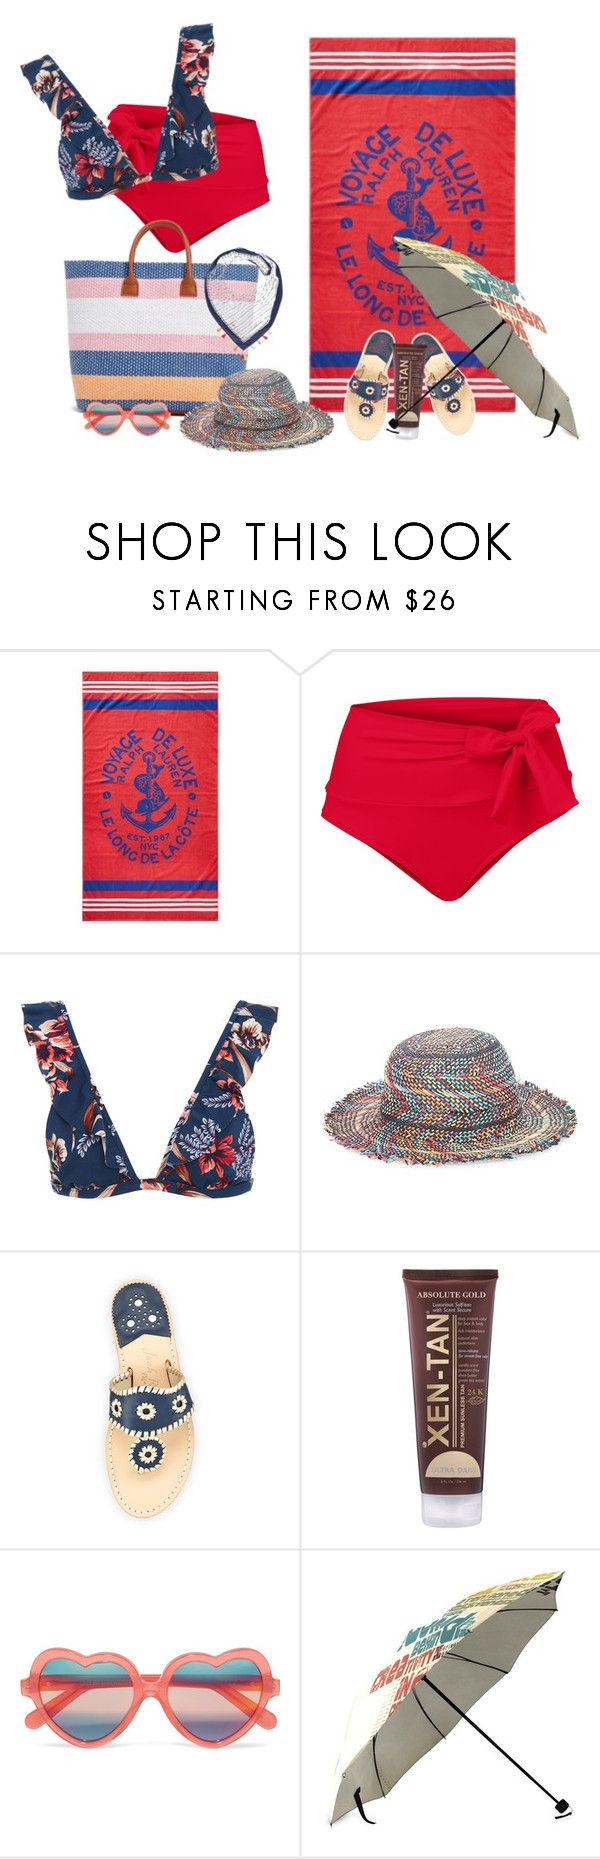 """Untitled #3086"" by diananicoleparsons ❤ liked on Polyvore featuring Ralph Lauren Home, Venus, Tori Praver Swimwear, Echo, Jack Rogers, Xen-Tan, Cutler and Gross and Rebecca Minkoff"